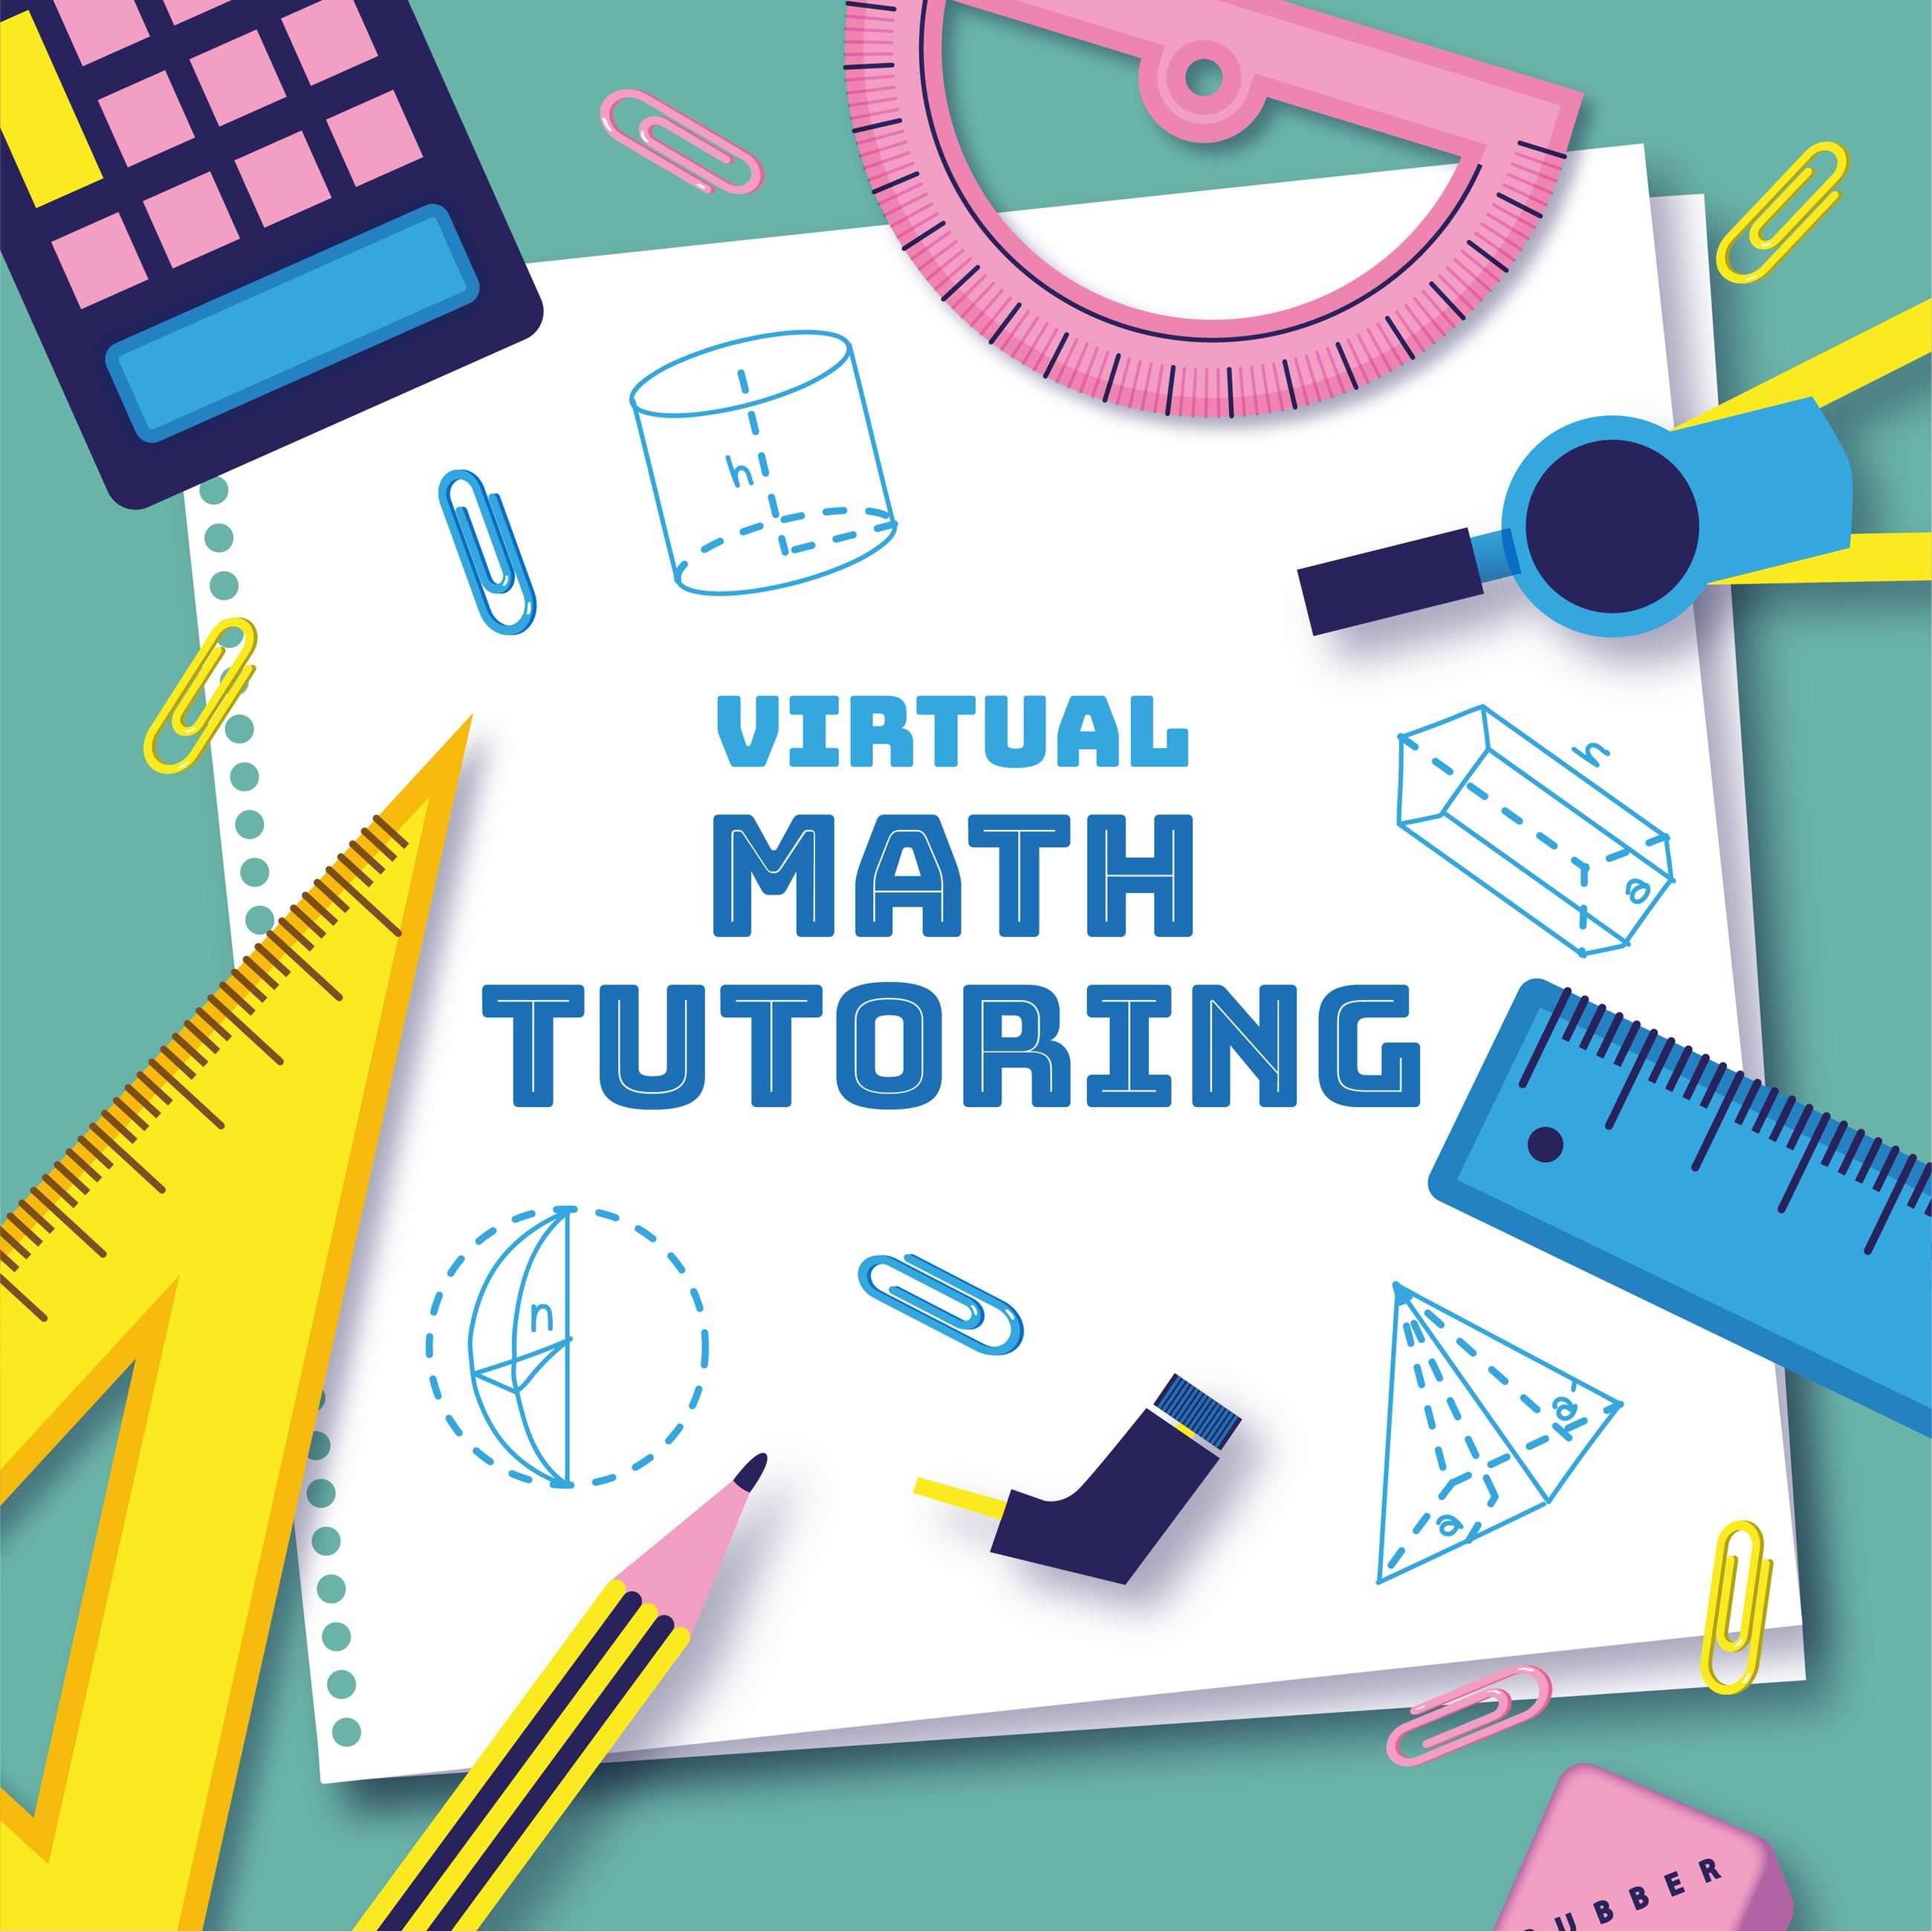 Virtual Math Tutoring Opens in new window